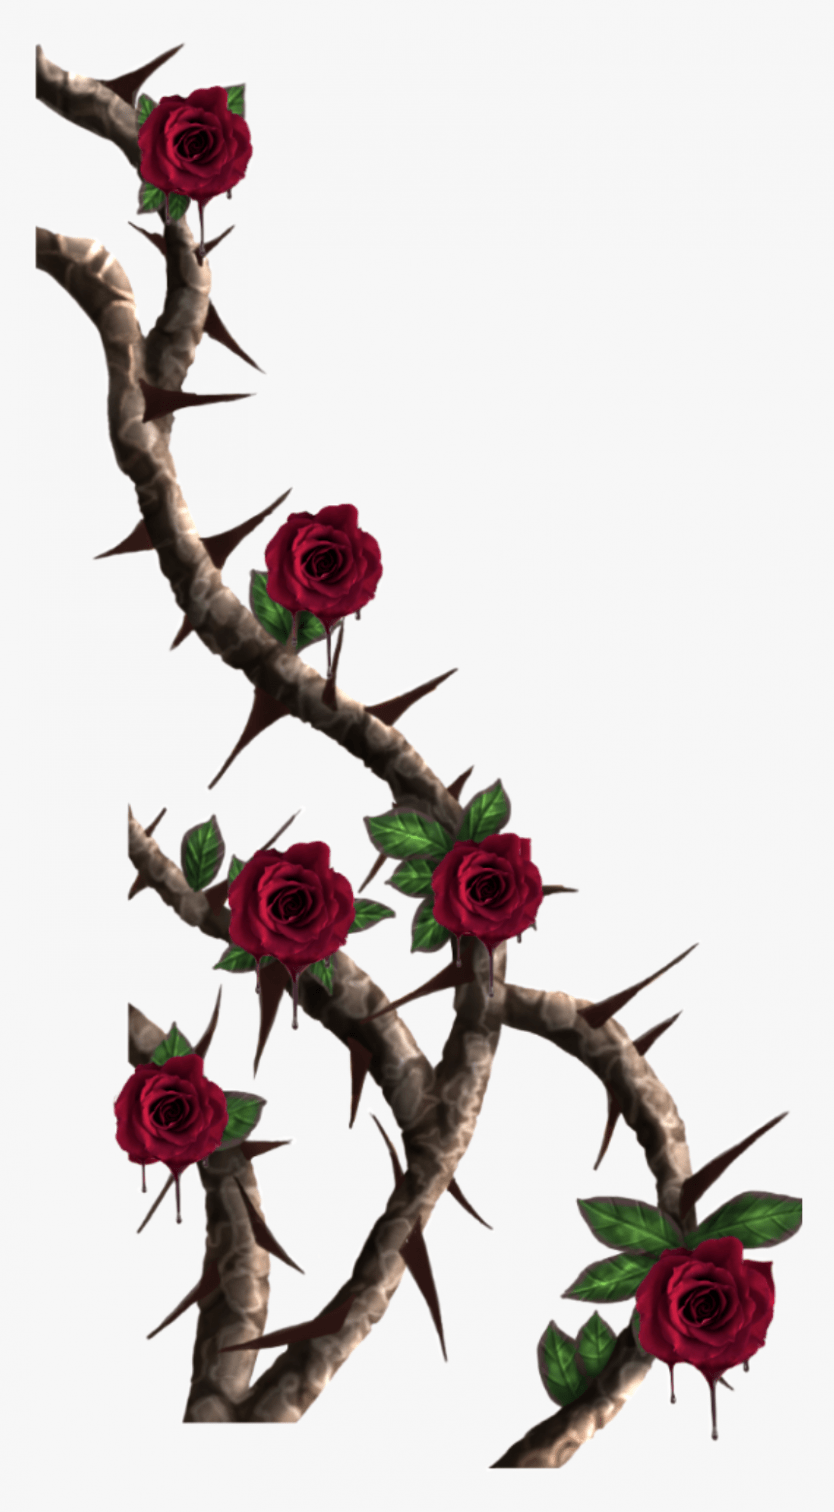 11 Things You Should Know About Cartoon Rose Vine Cartoon Rose Vine Www Flower Cartoon Rose Vine Wwwflower Rose Vines Rose Vine Tattoos Cartoon Rose